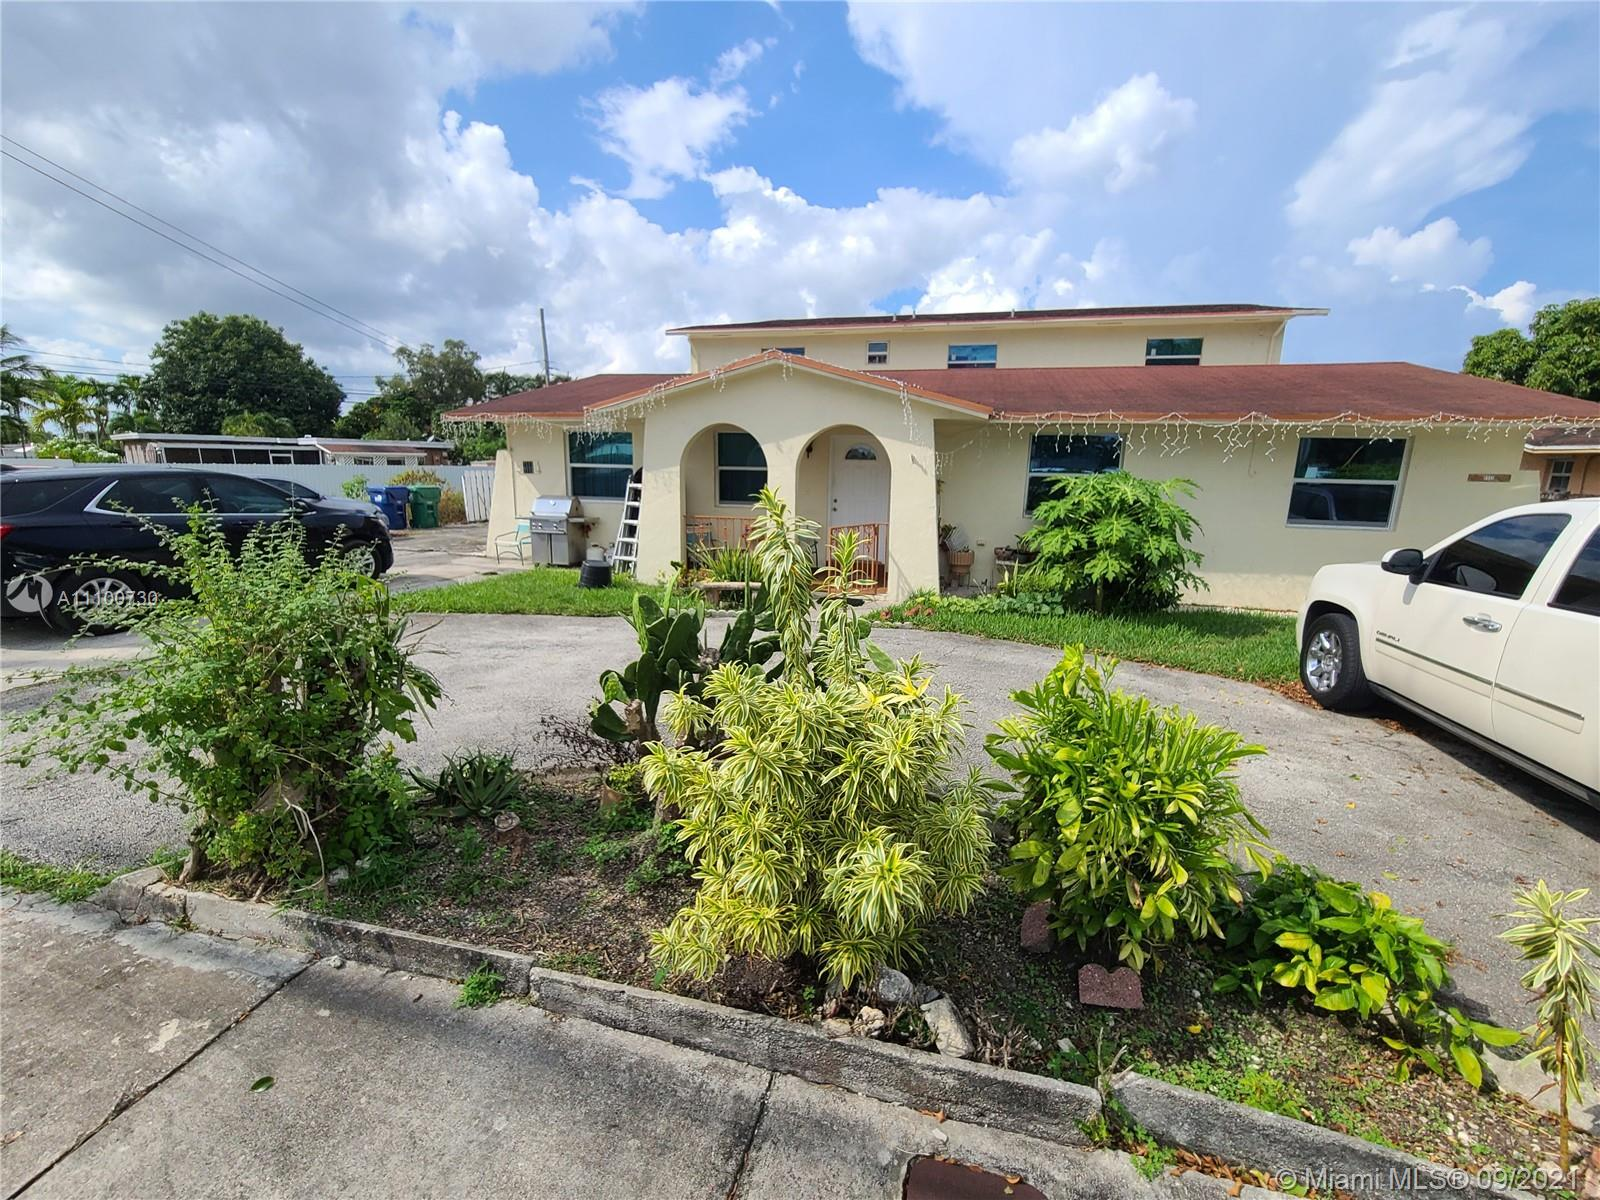 7111 SW 16th St, Miami, Florida 33155, ,Residential Income,For Sale,16th St,A11100730